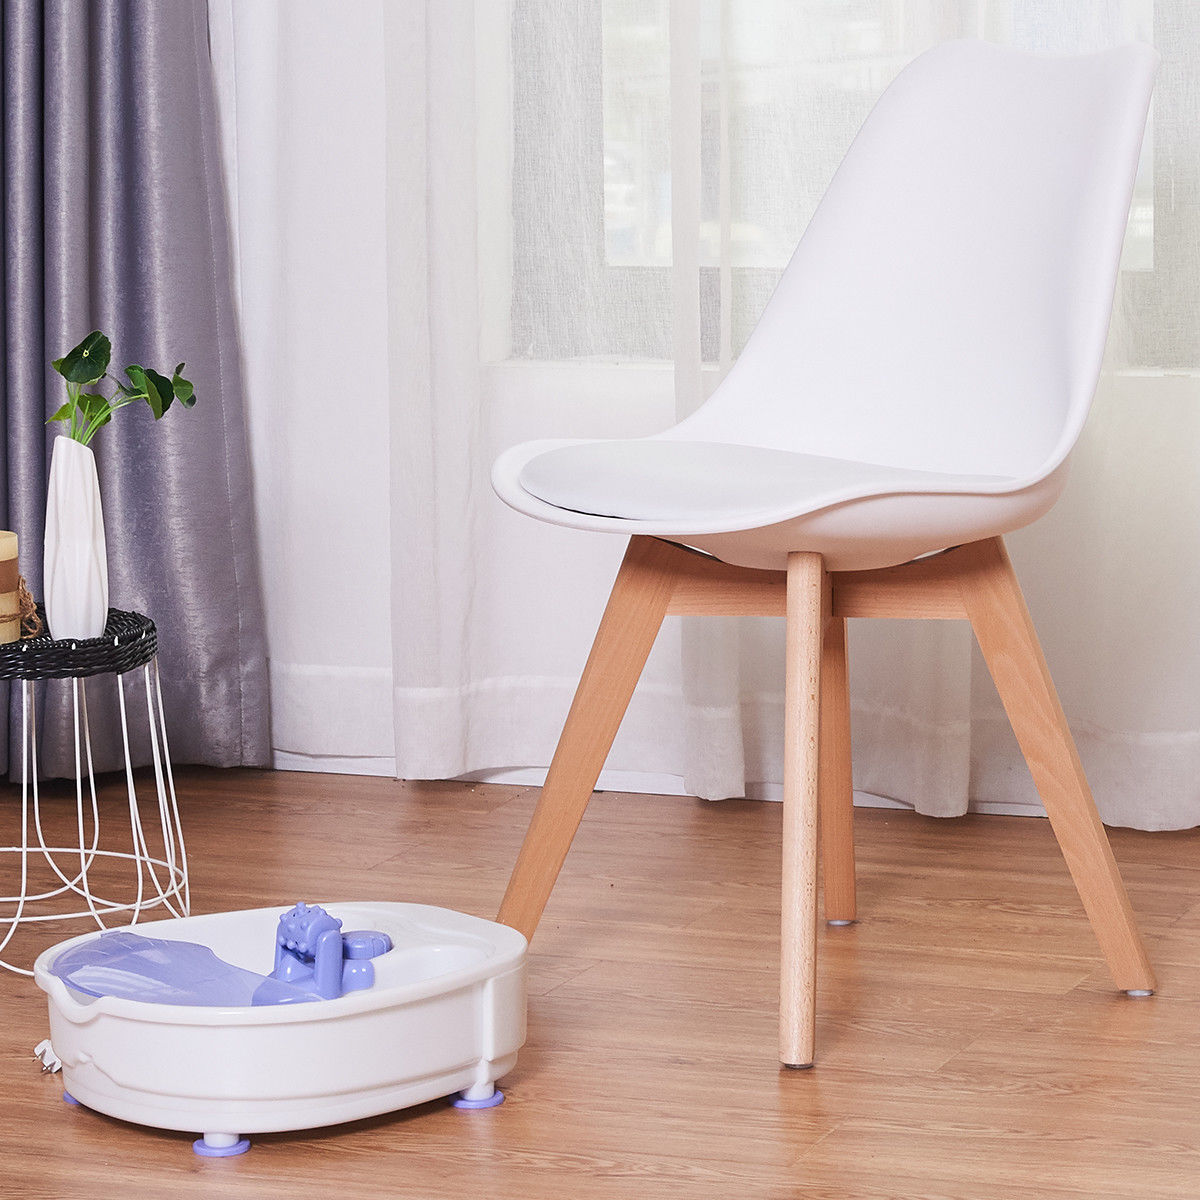 Costway Electrical Foot Basin Tub Point Massage Home Use Therapy Machine Health Heating - image 2 de 9